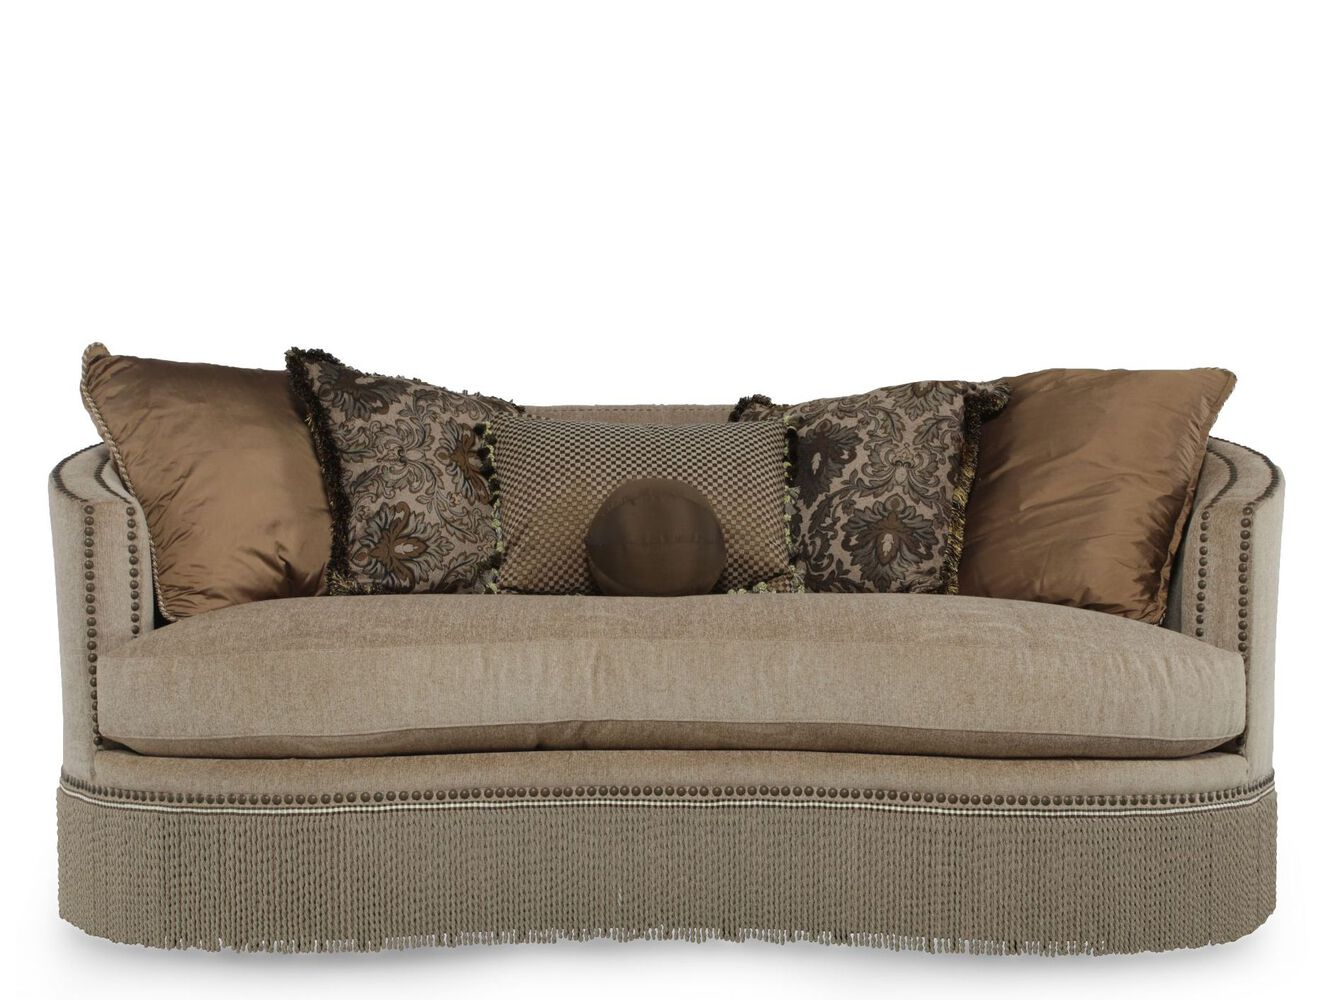 Fringed Traditional Demilune Sofa In Tan Mathis Brothers